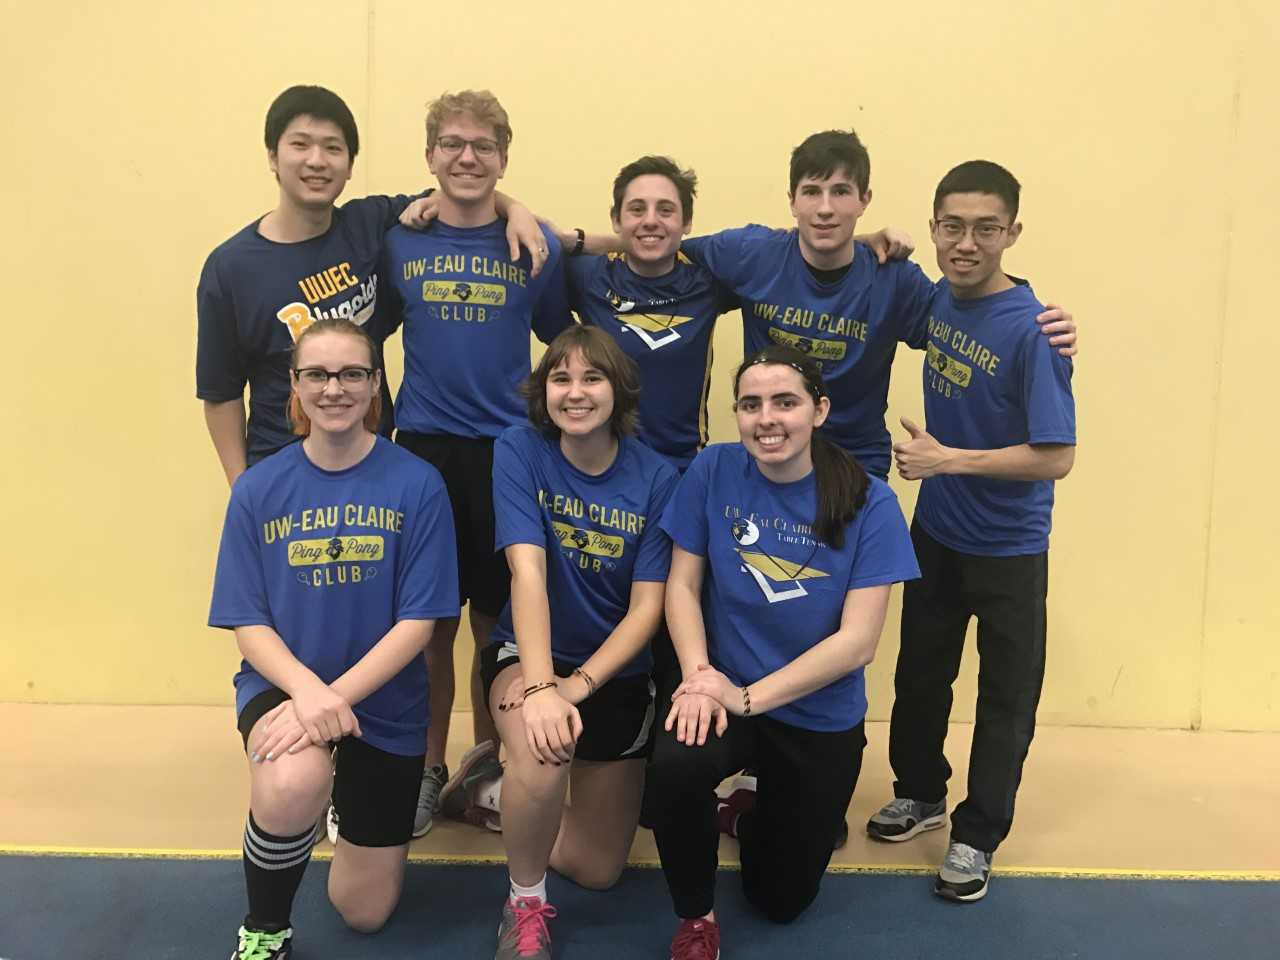 In this picture of last year's Table Tennis Club, Taylor Luecke, the president of the club, is the furthest right in the first row, and Mel Rausch, the vice president of the club, is the second furthest right in the first row.